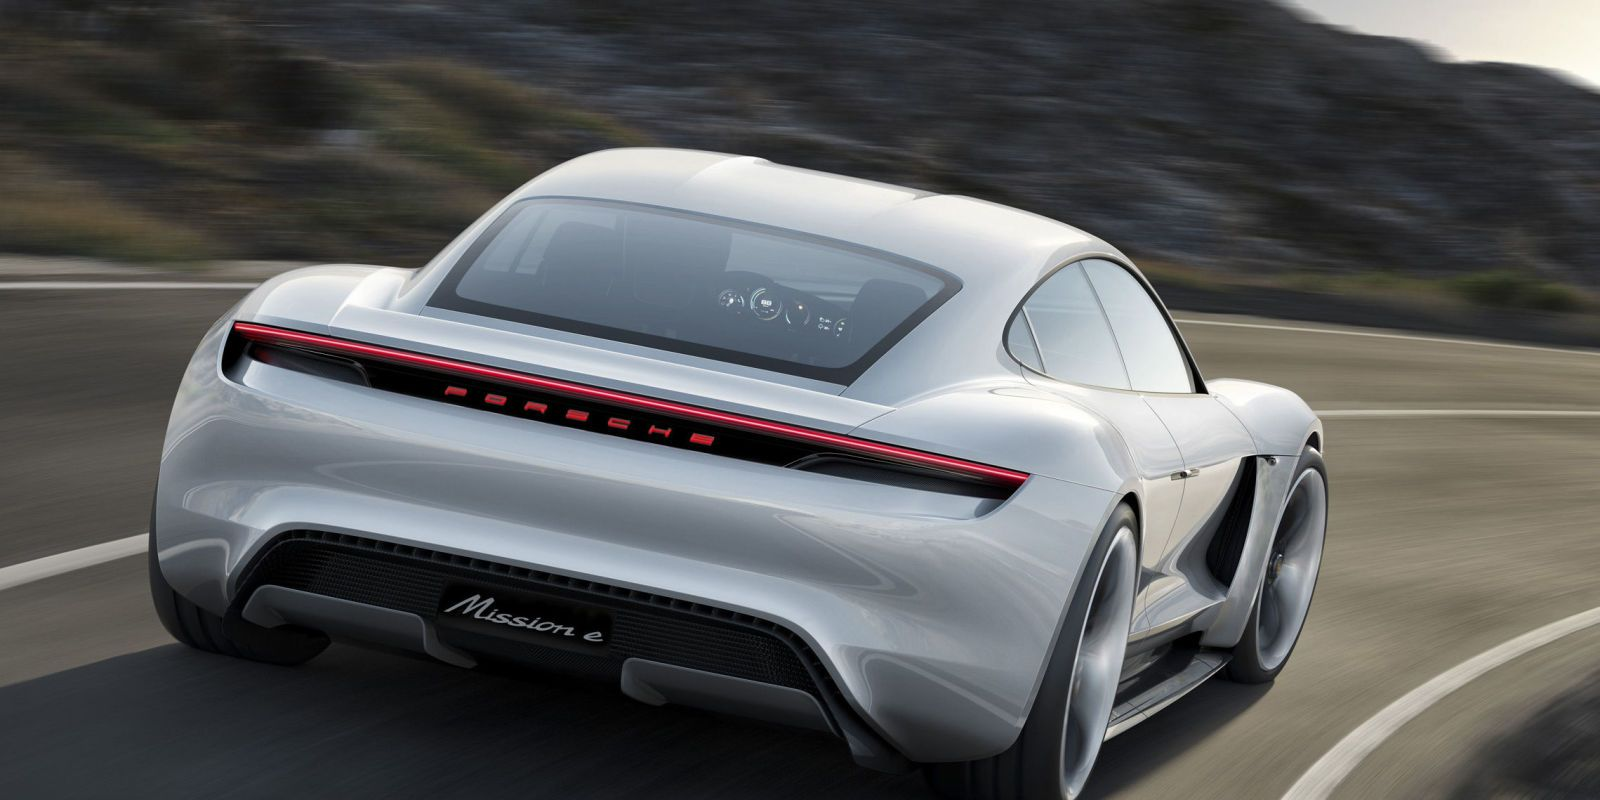 There's always reason to be worried when a legendary automaker veers into a new technology, but the very pretty Mission E has us excited for the electric car(s) Porsche is cooking up. The future looks bright in Stuttgart.